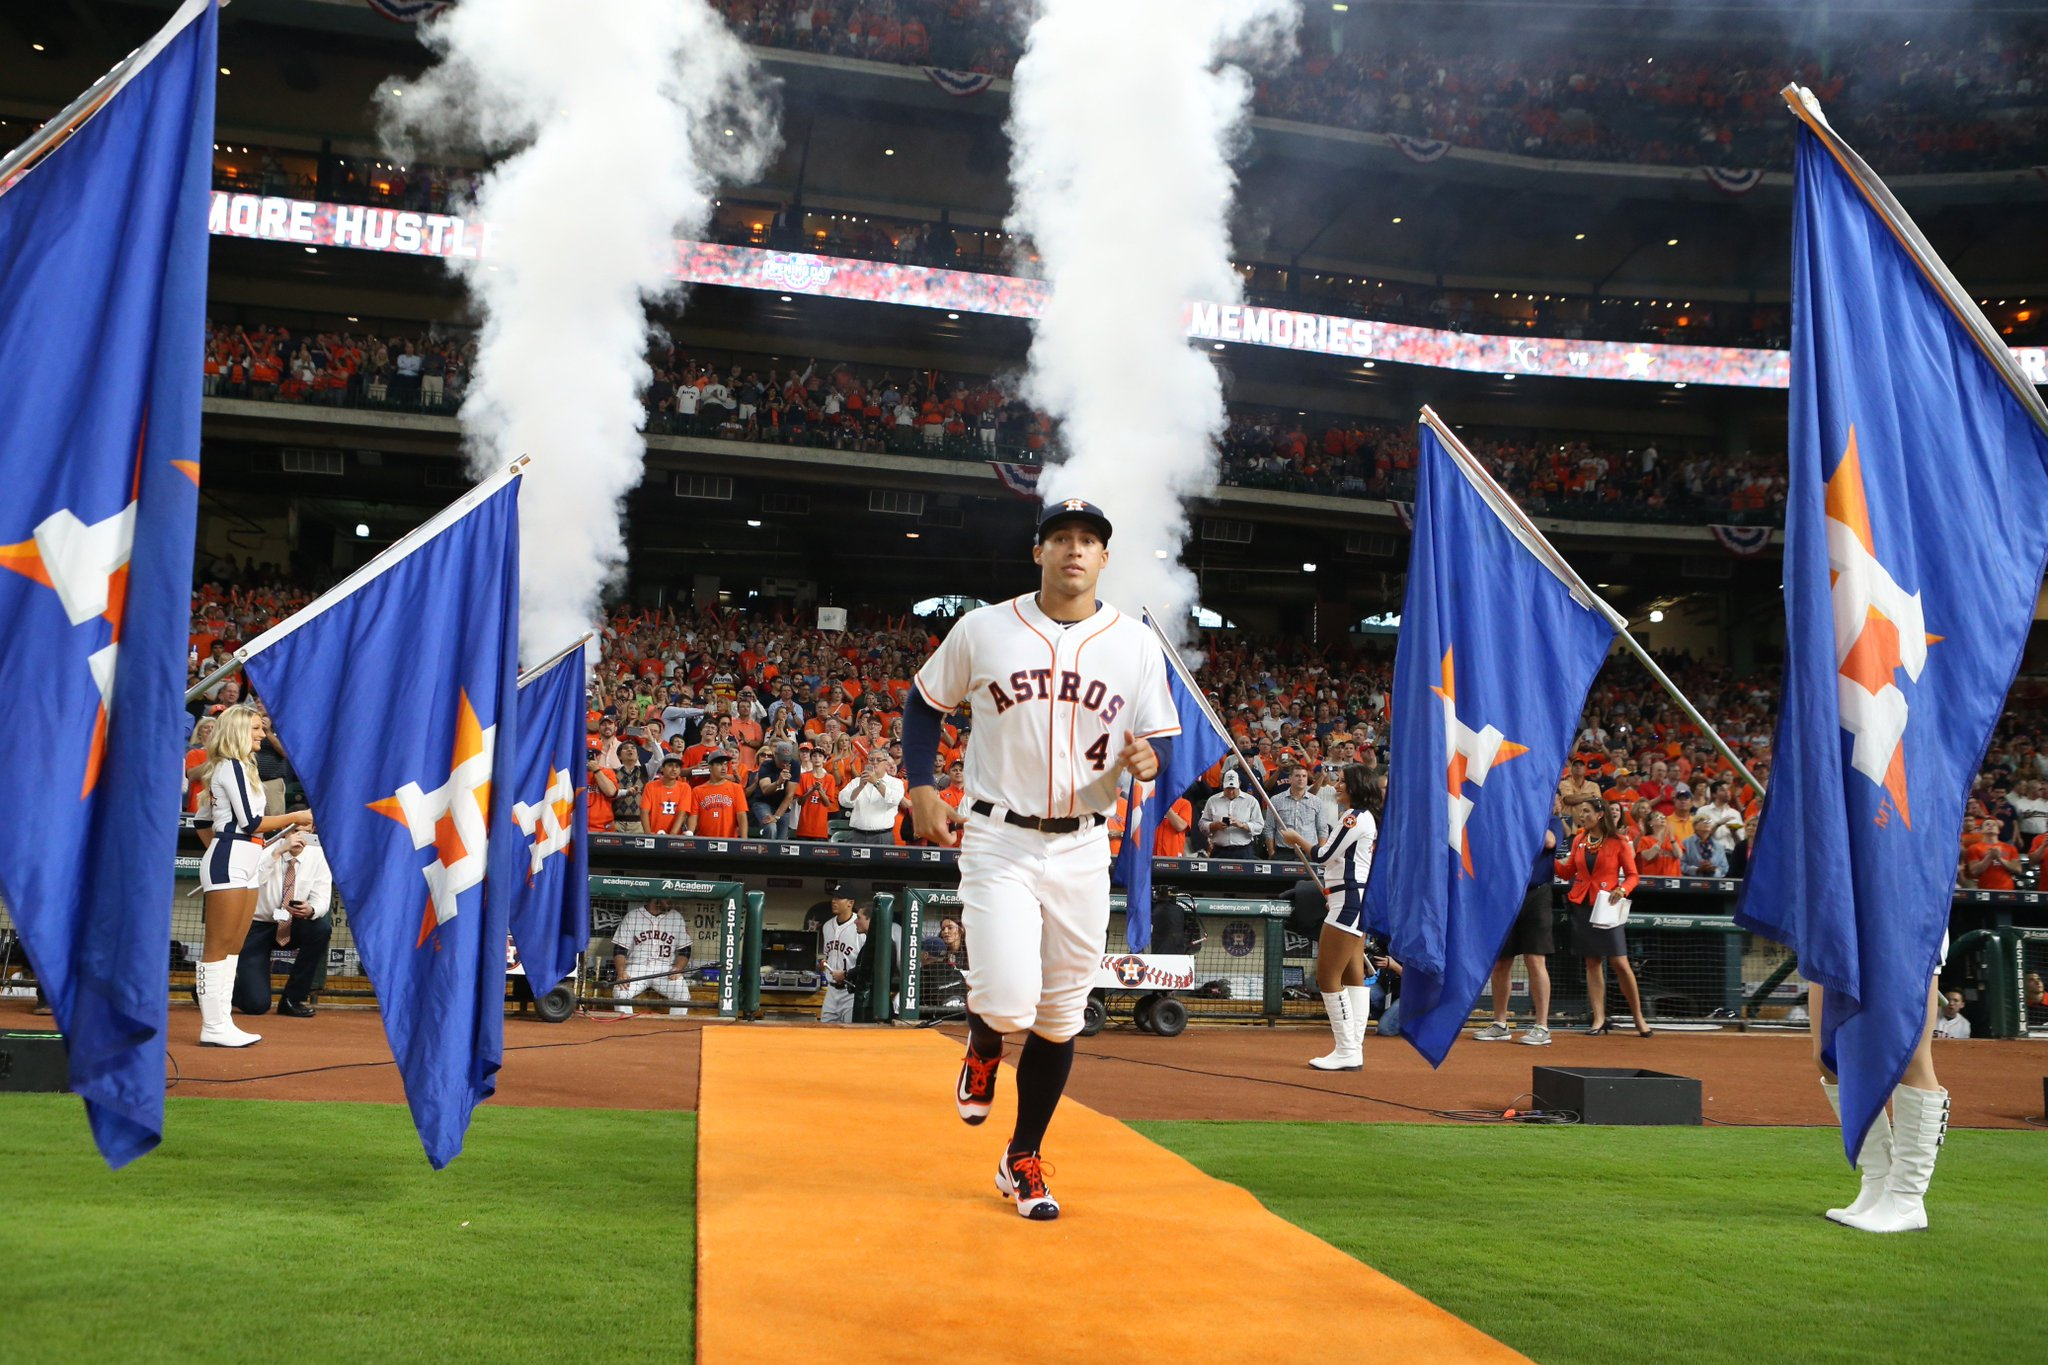 TWO WEEKS. #AstrosOpeningDay https://t.co/fB90sQYd5z https://t.co/4GwHklXWXK